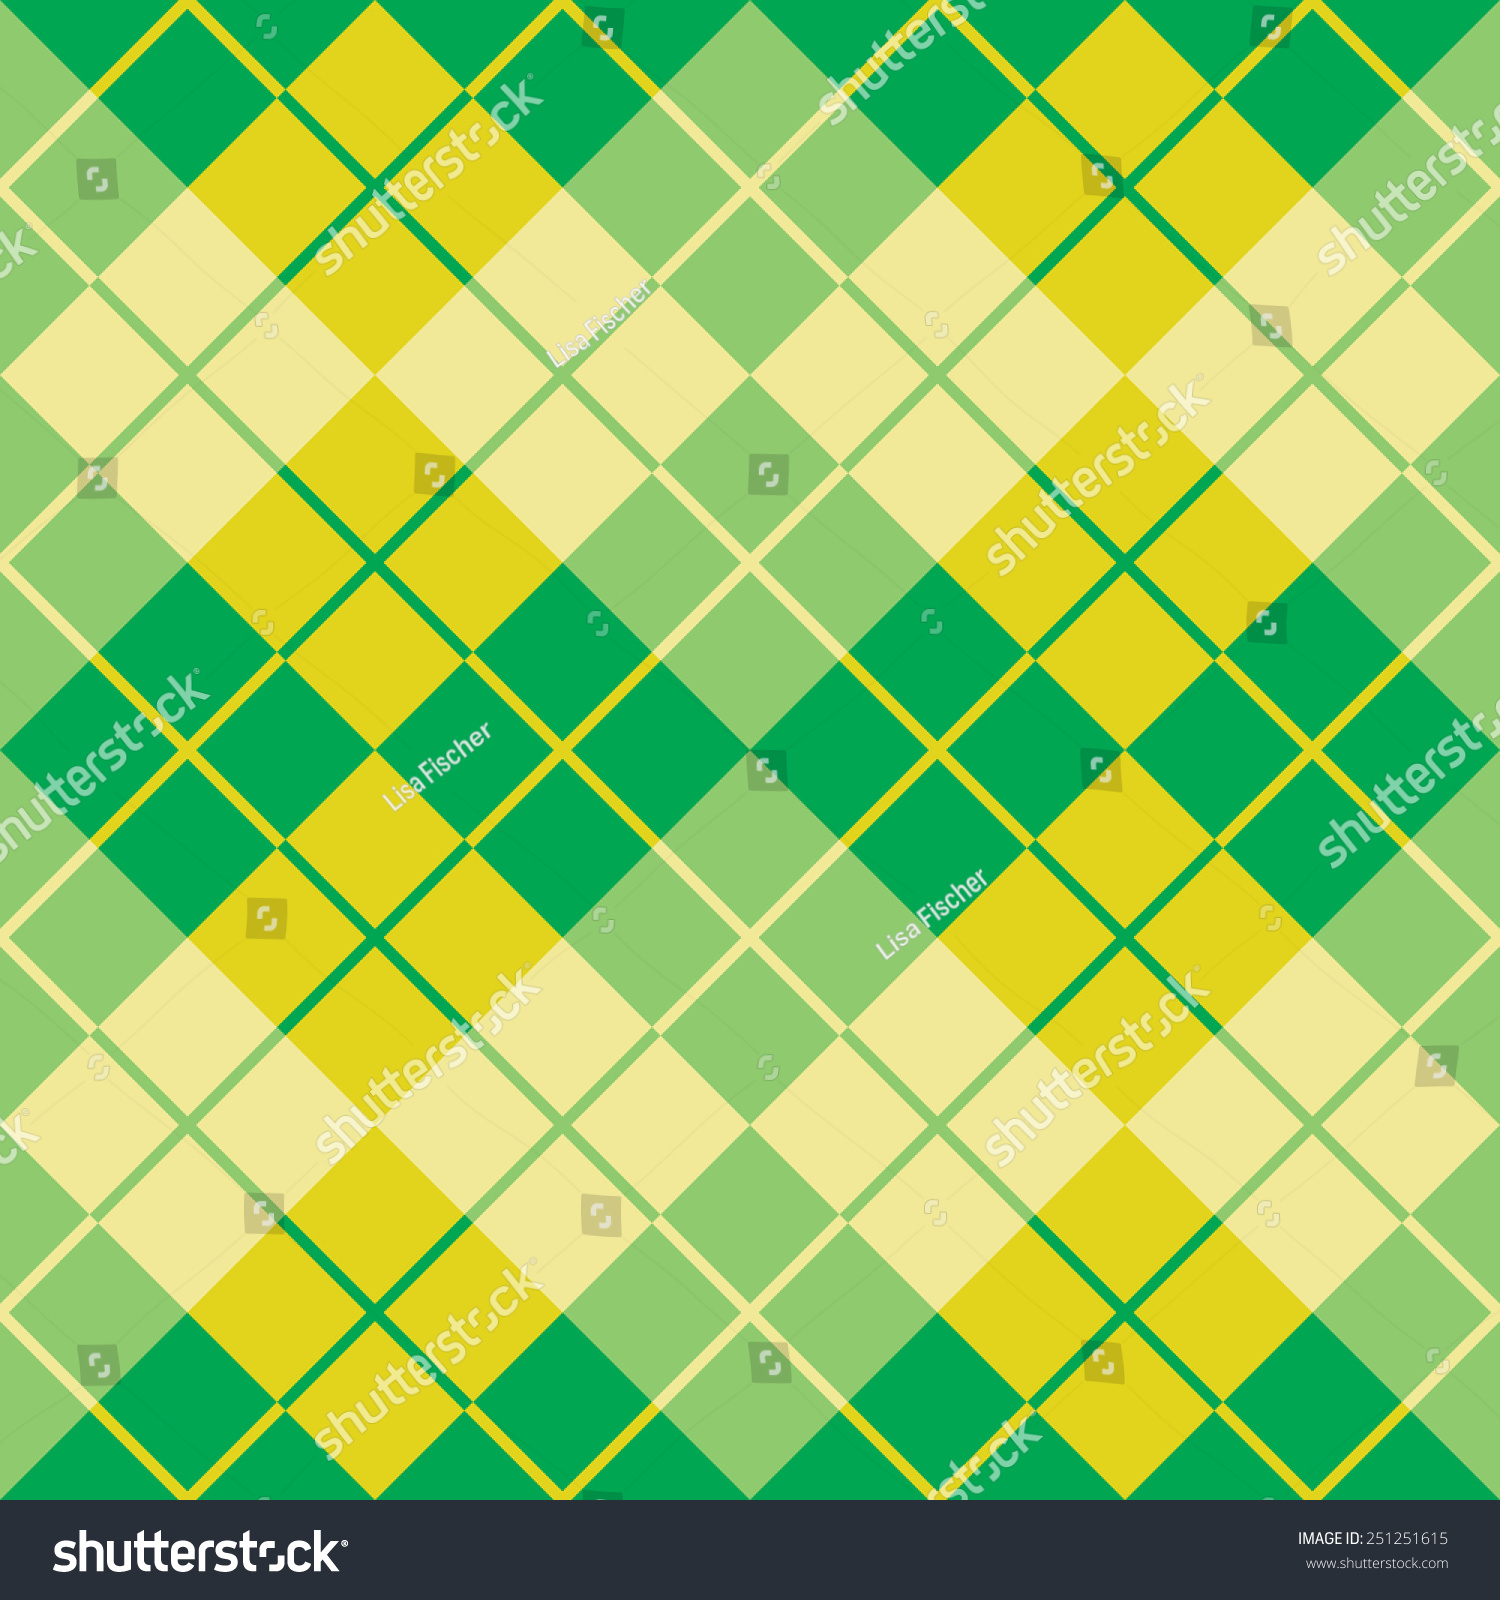 Seamless Argyle Pattern Analogous Colors Stock Vector (Royalty Free ...